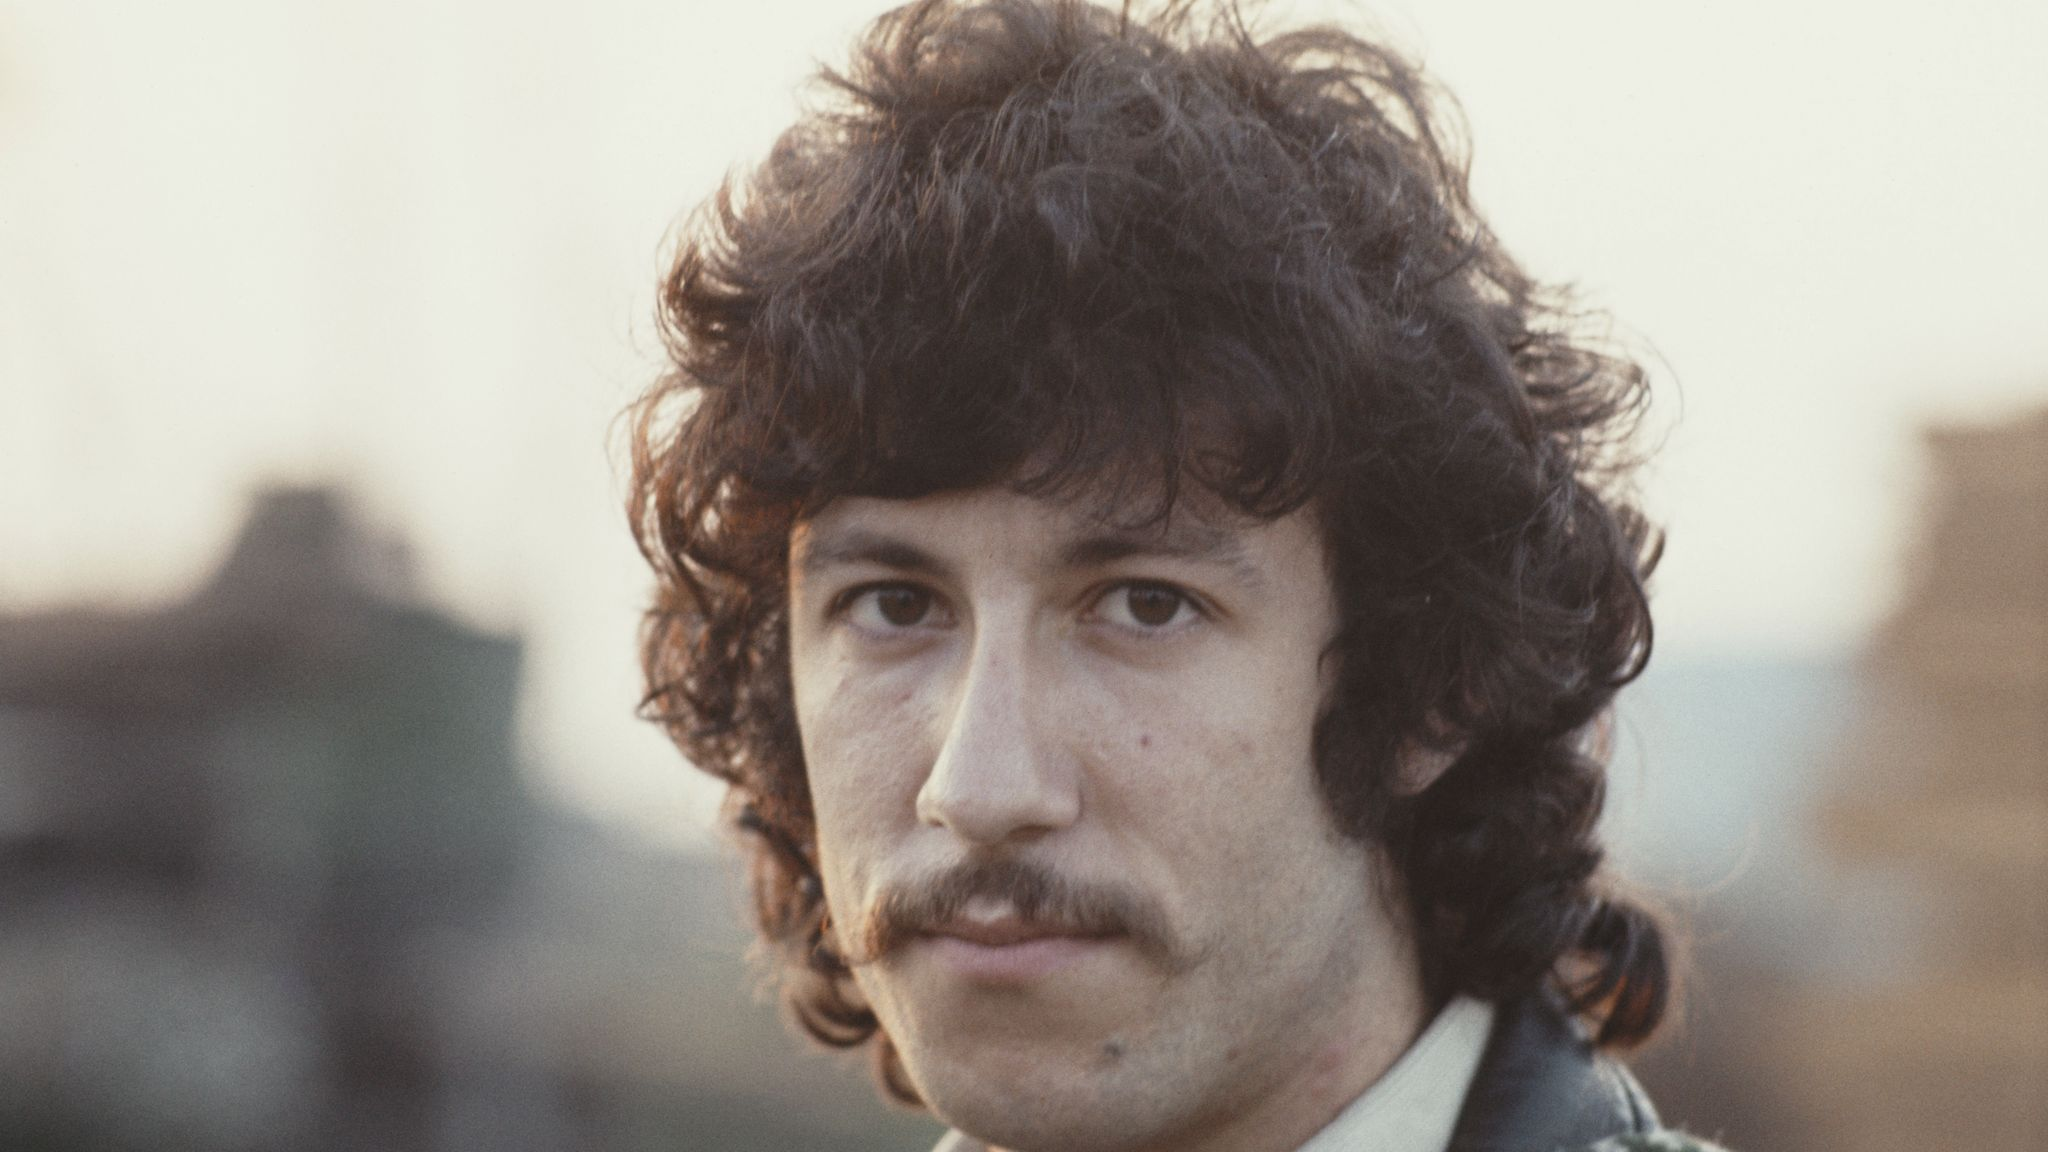 Peter Green pictured in 1968, the year after Fleetwood Mac was formed